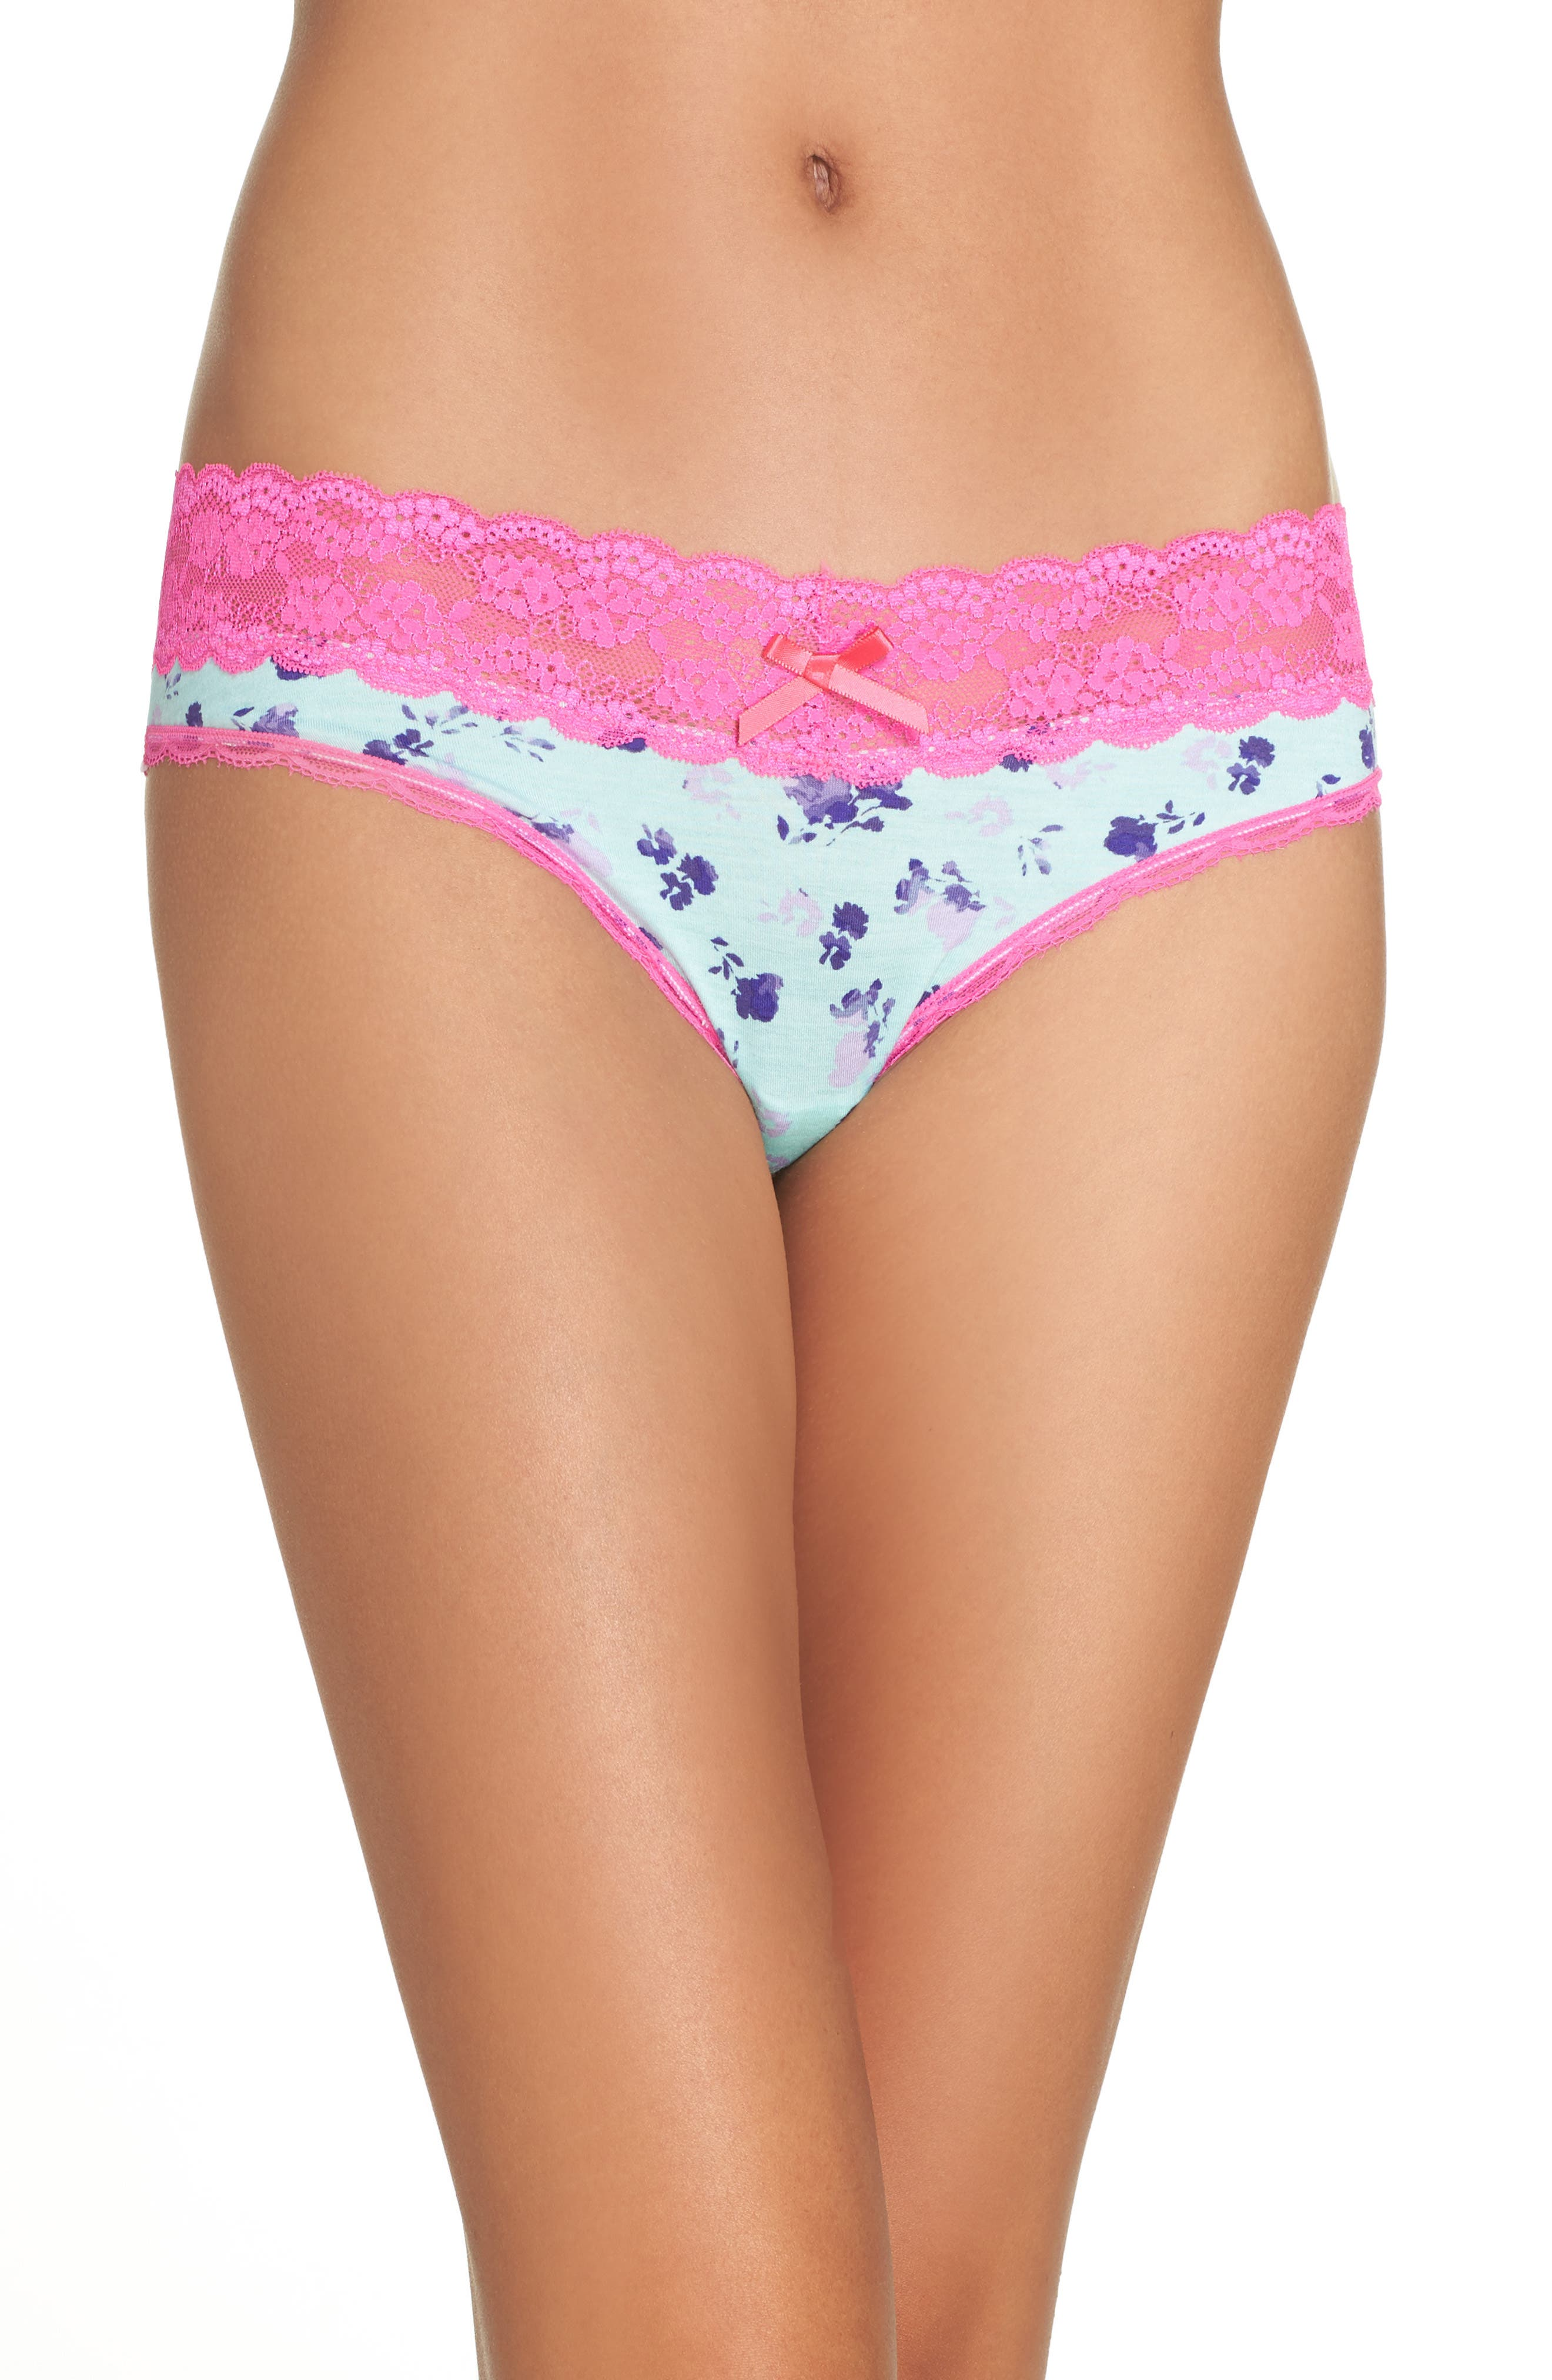 Alternate Image 1 Selected - Honeydew Intimates Lace Trim Low Rise Thong (4 for $30)